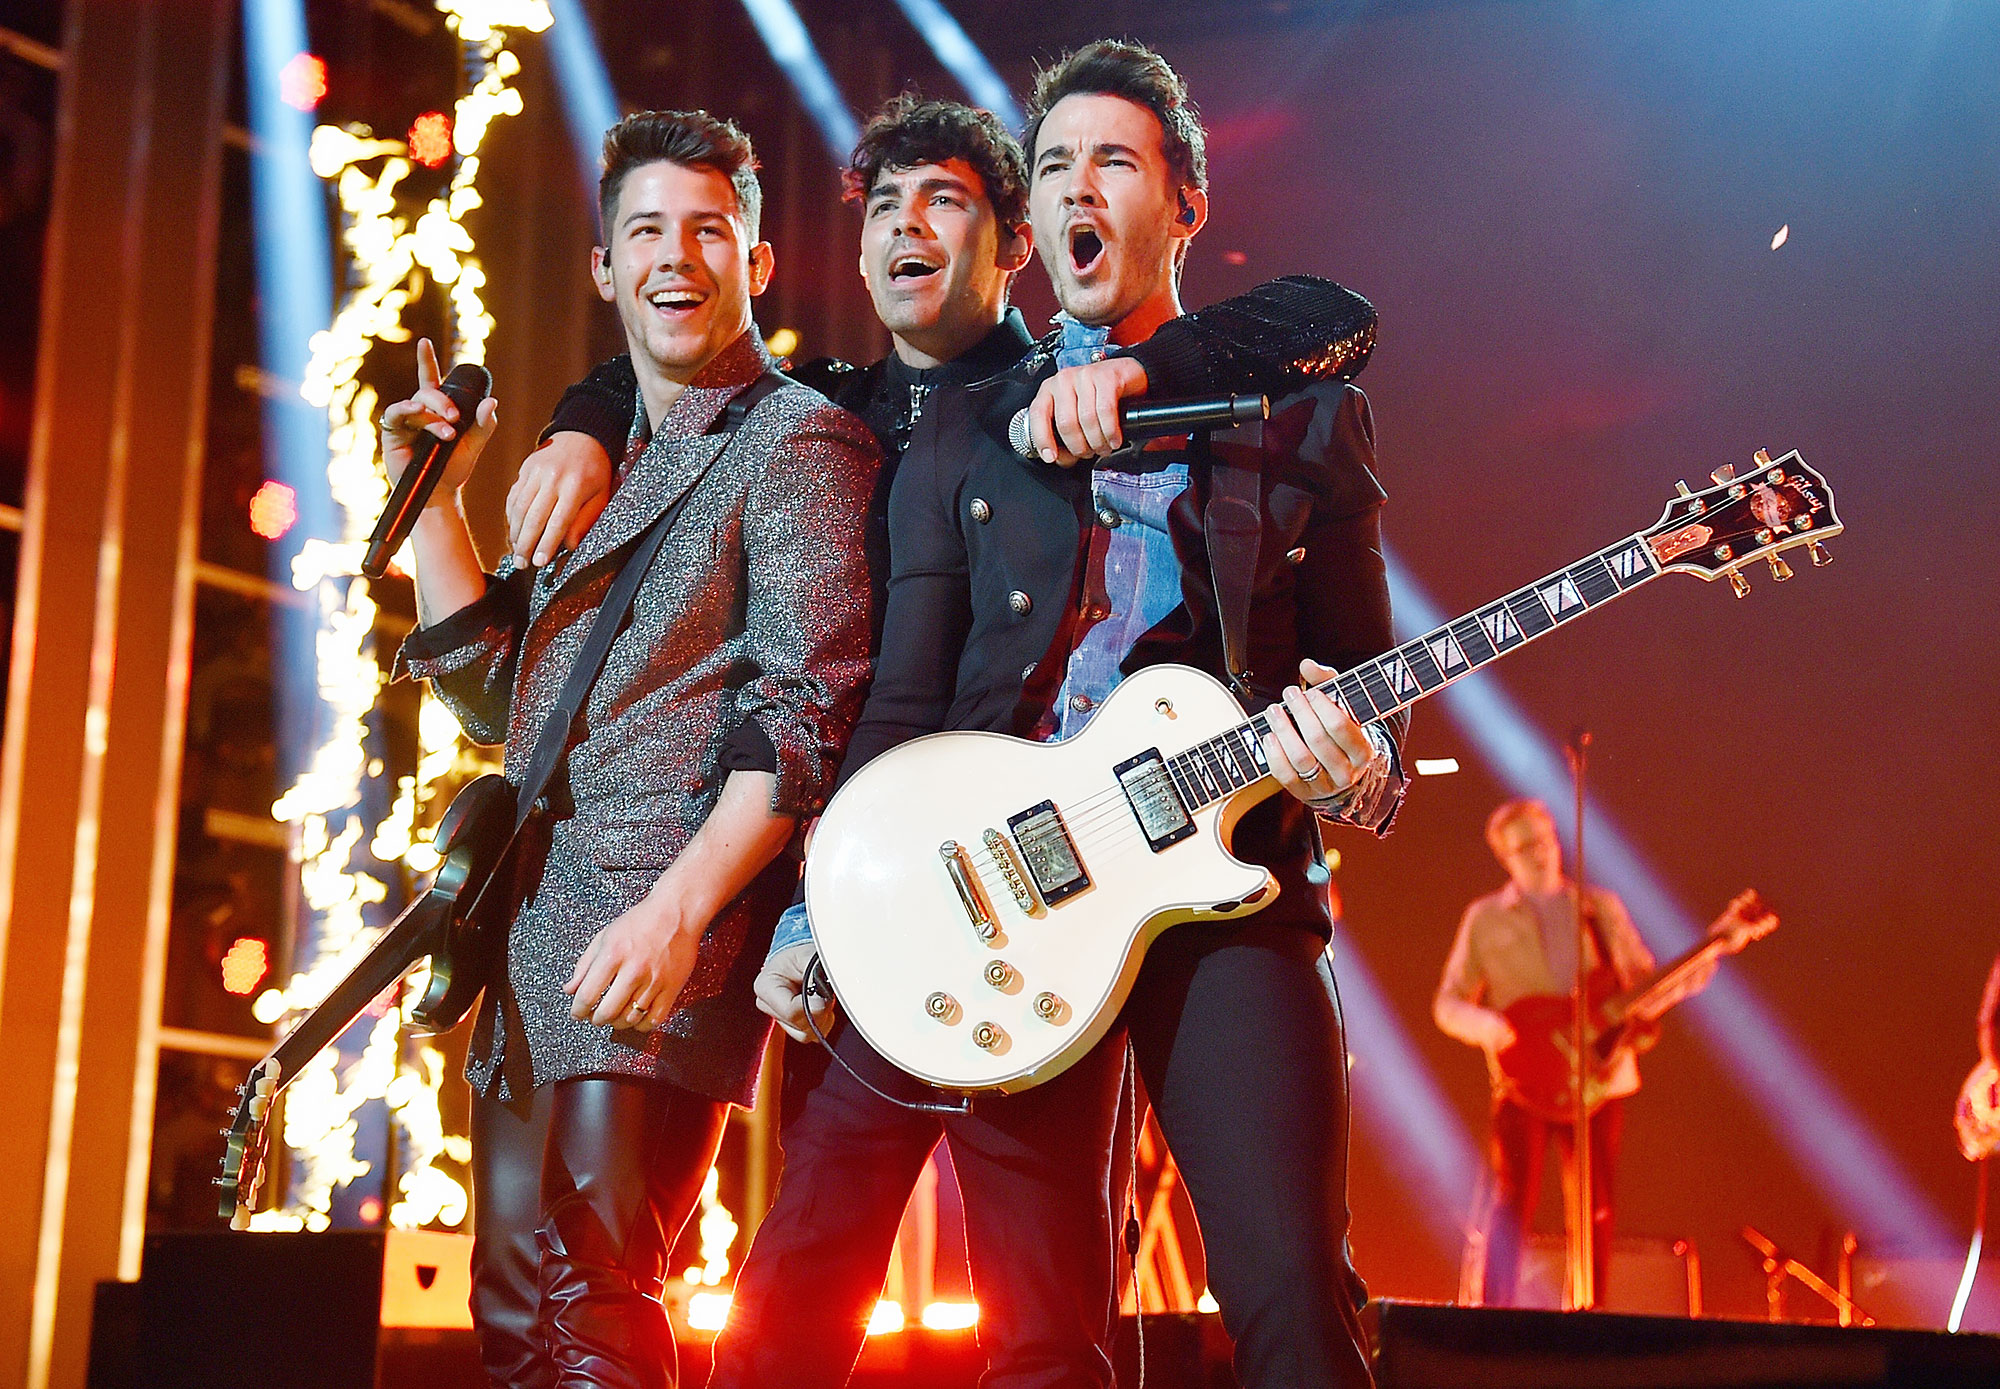 John Stamos Jonas Brothers Forever Song Tour